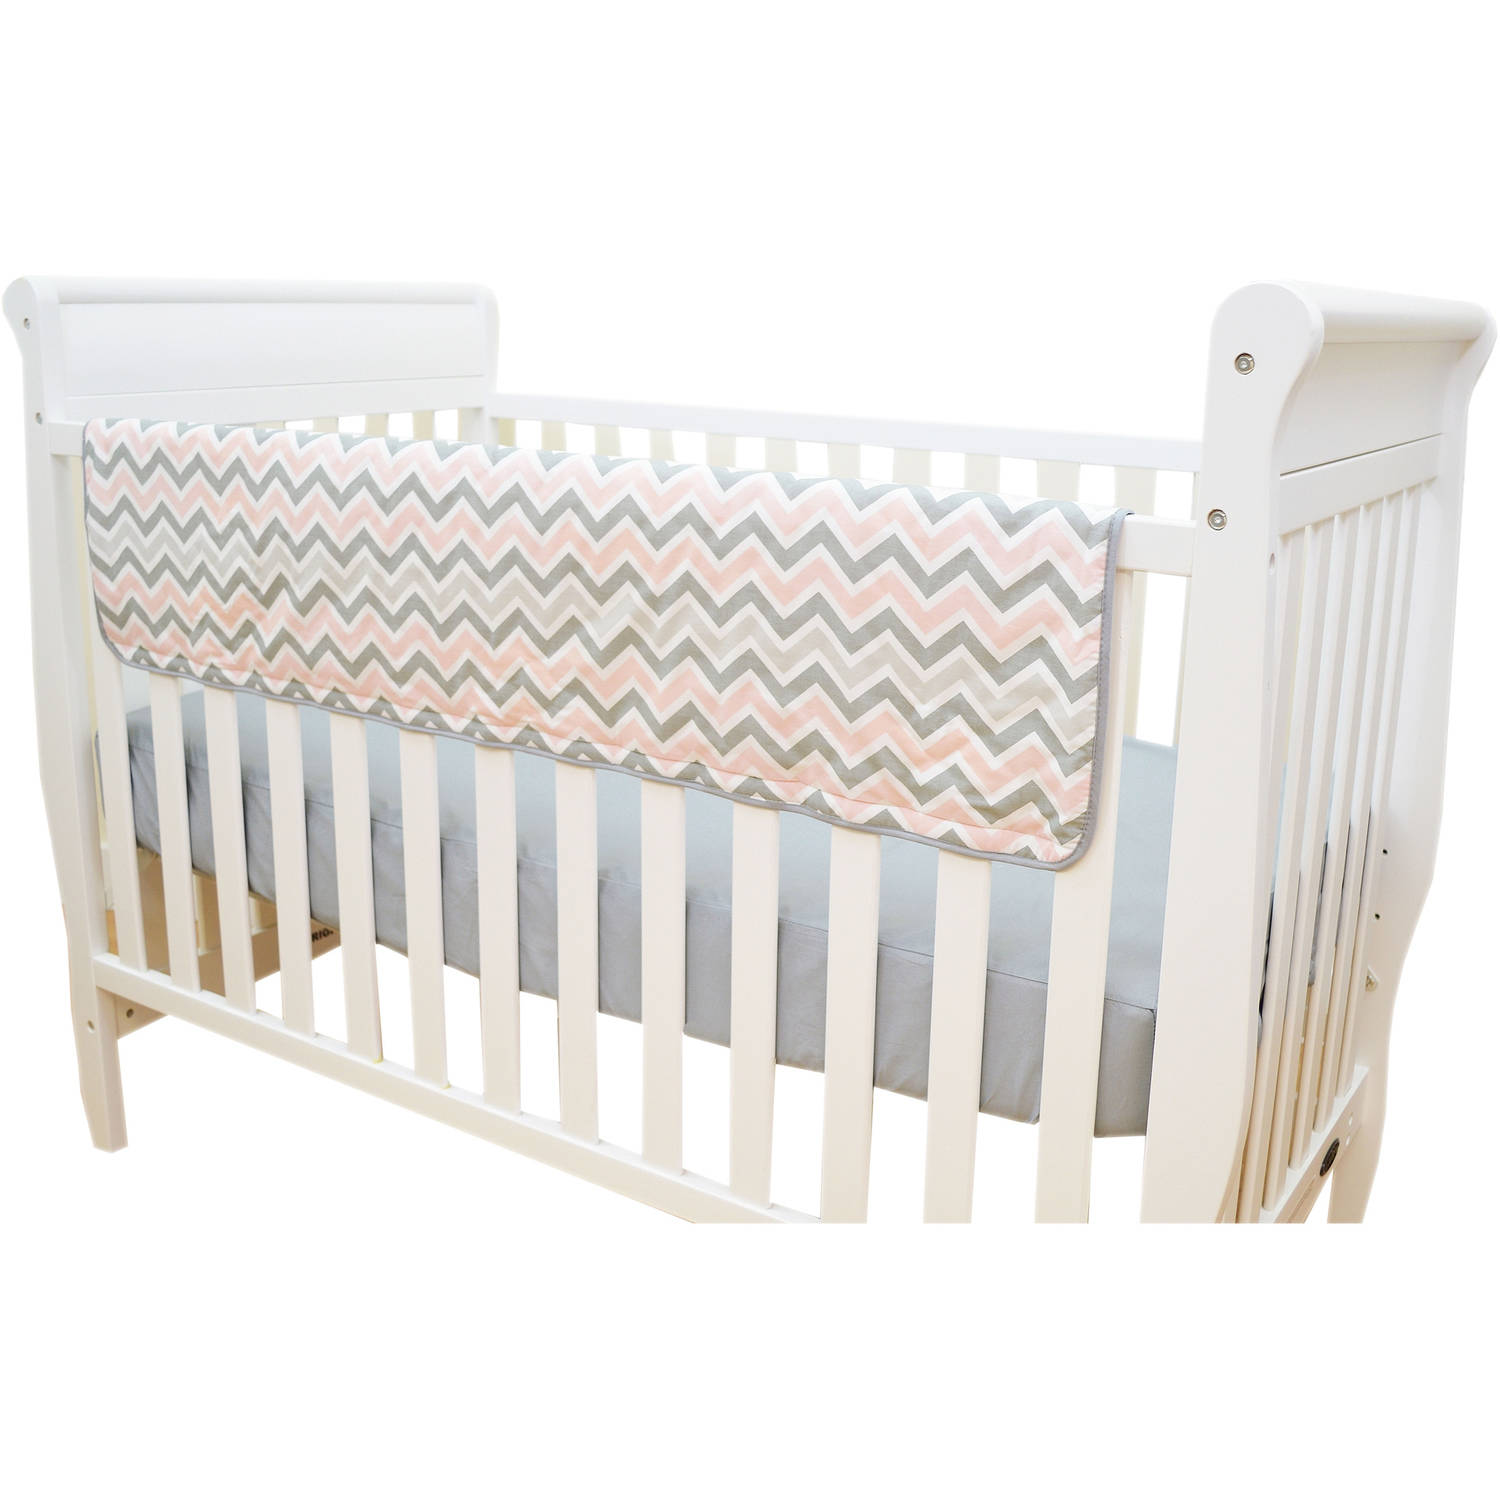 TL Care Crib Rail Cover, Pink Zigzag